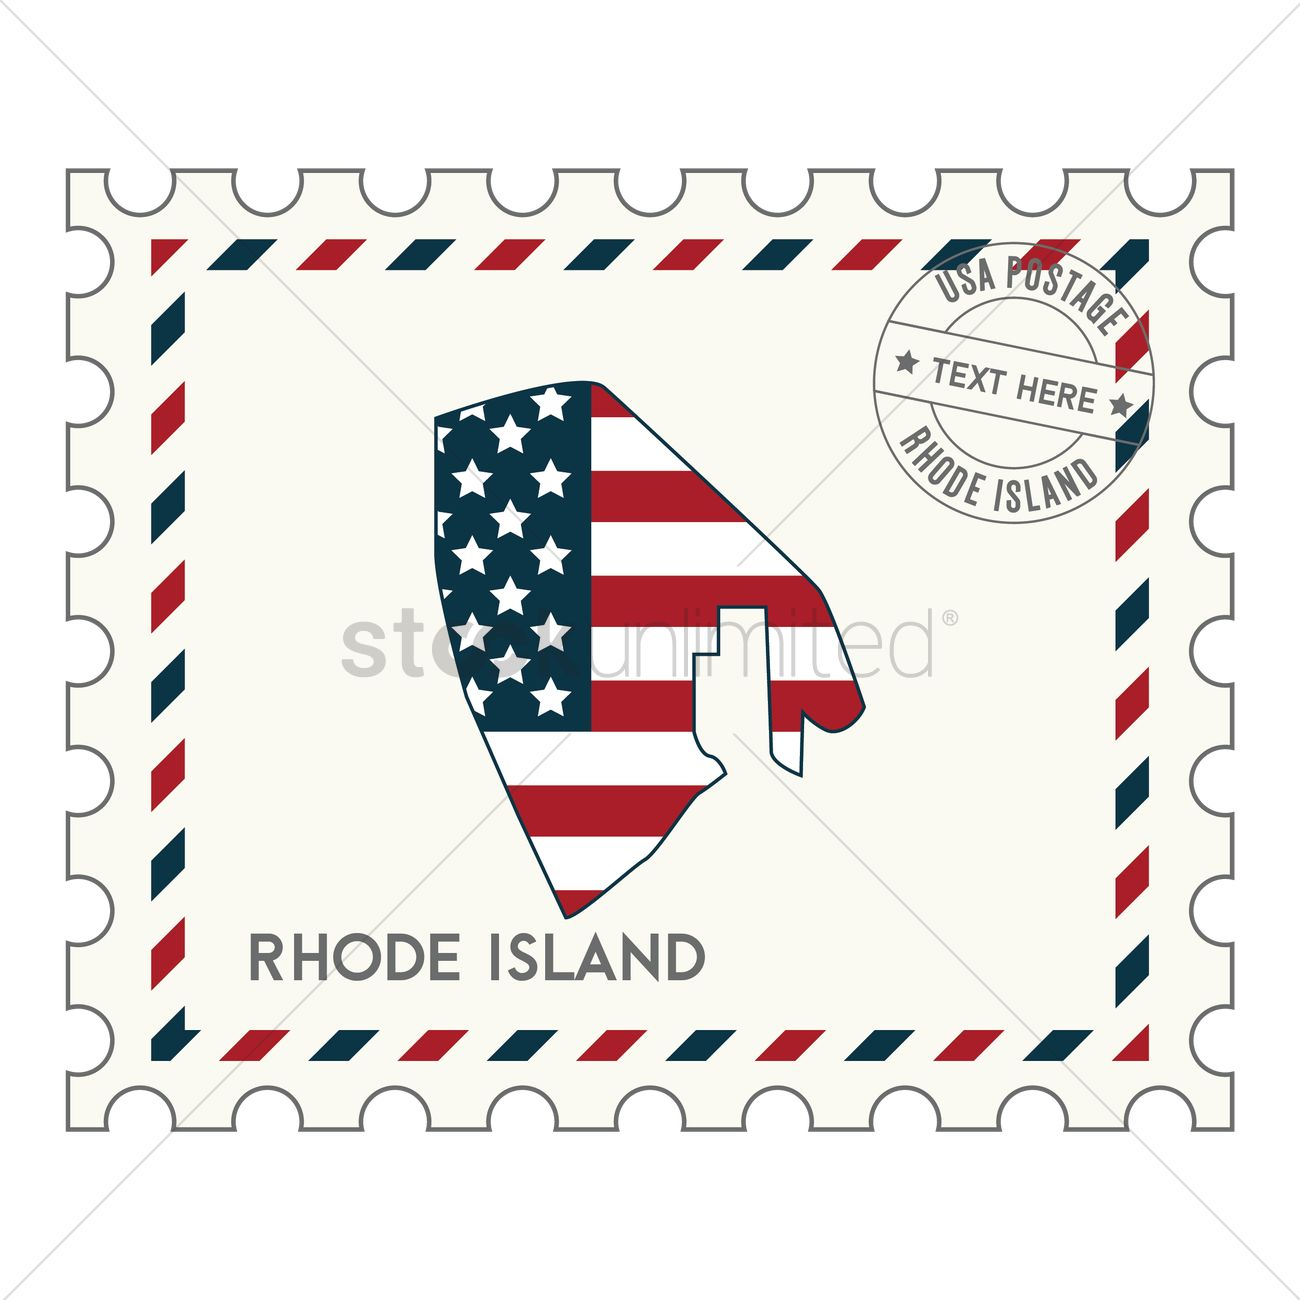 rhode island postage stamp vector image 1550711 stockunlimited